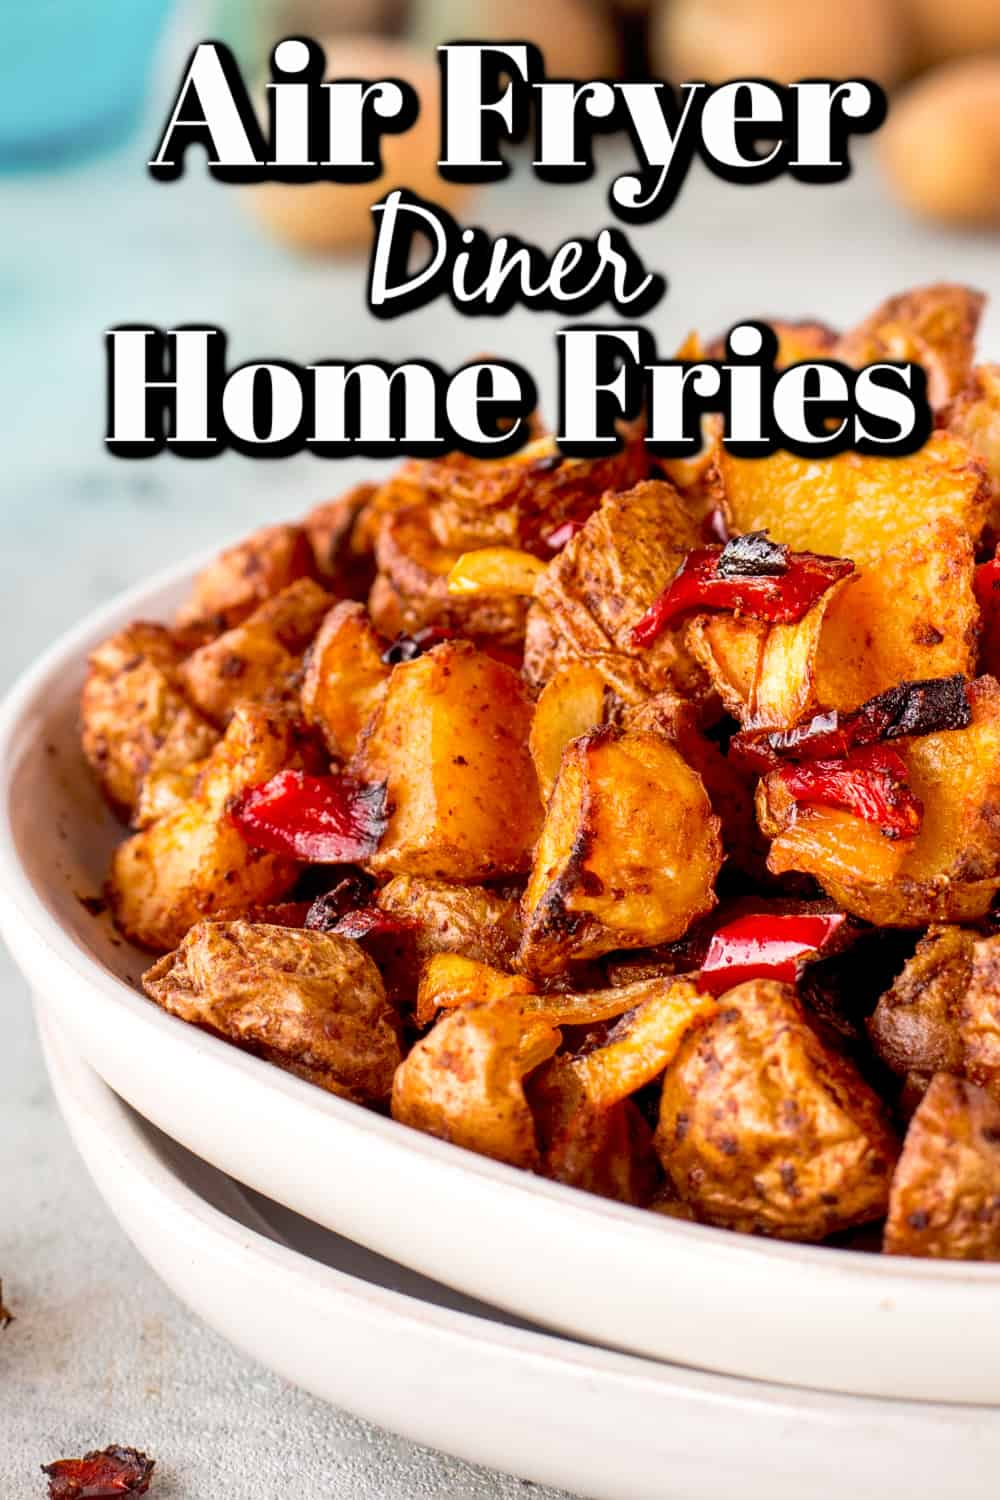 Air Fryer Diner Home Fries Pin